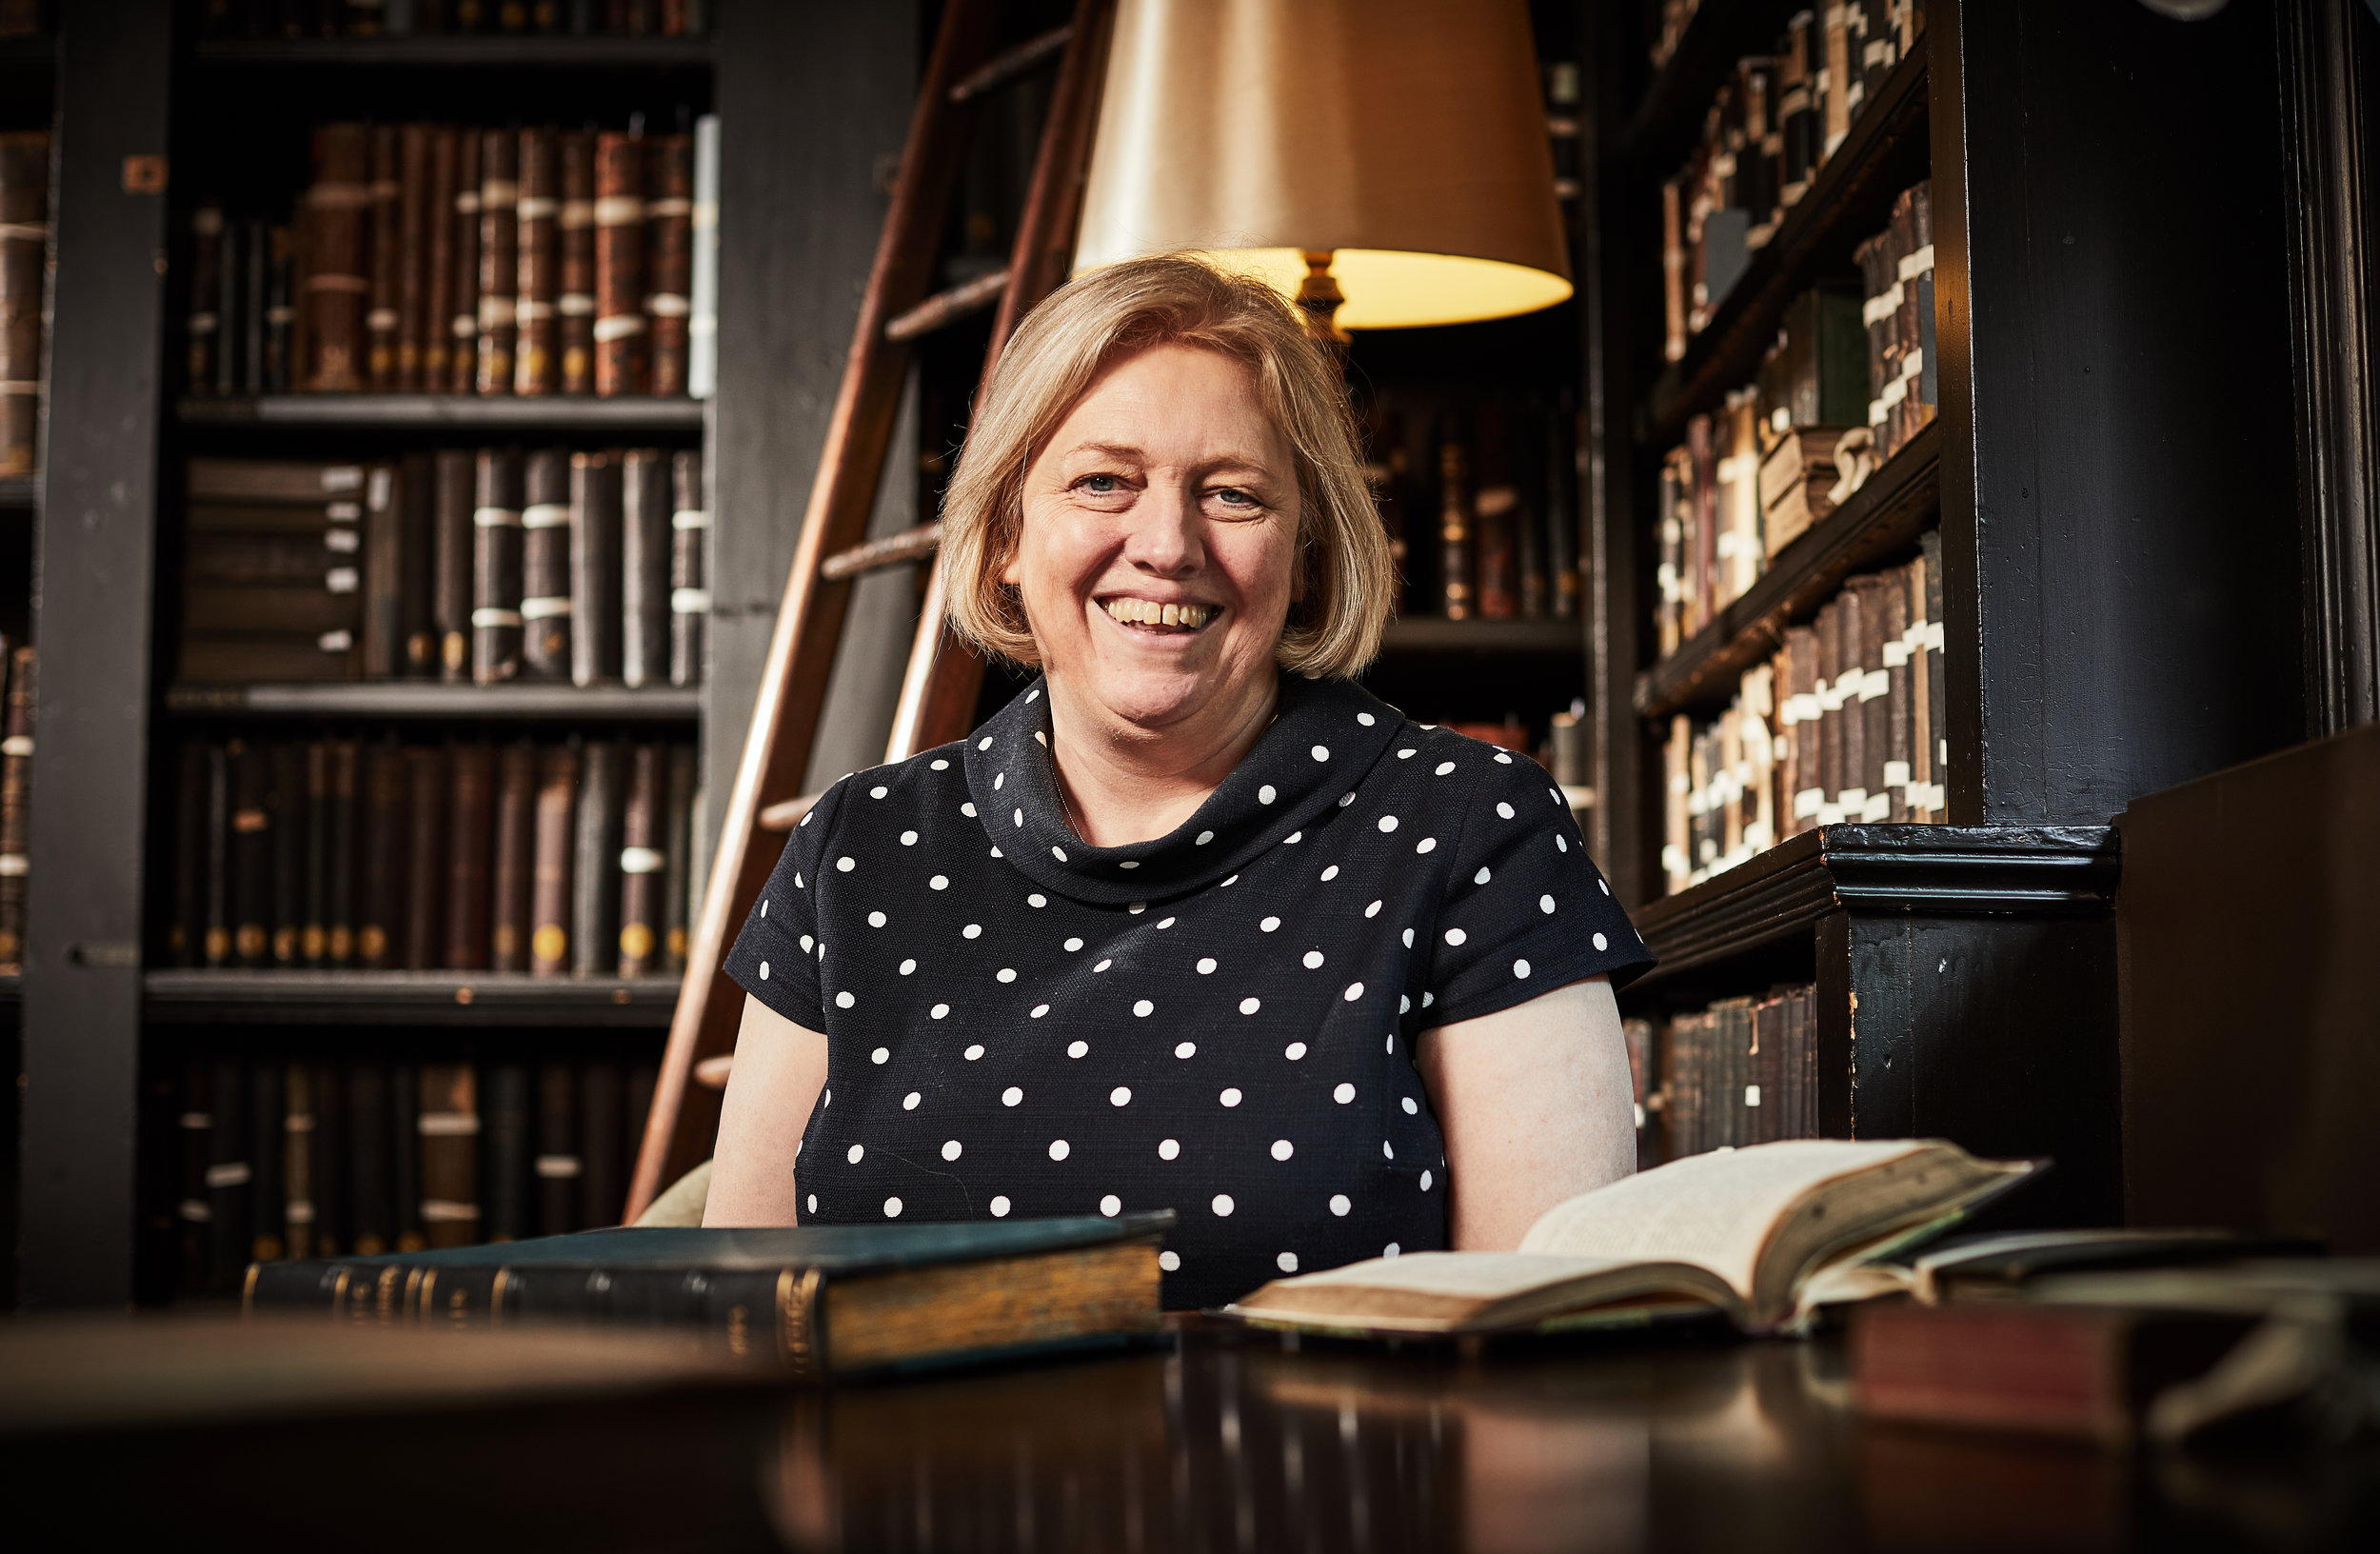 Kathryn Graham - Kathryn is a solicitor specialising in trust and charity law and works in the city centre. She fell in love with Library at first sight and finds it a peaceful haven in the midst of a busy day. She has been a trustee since 2018.